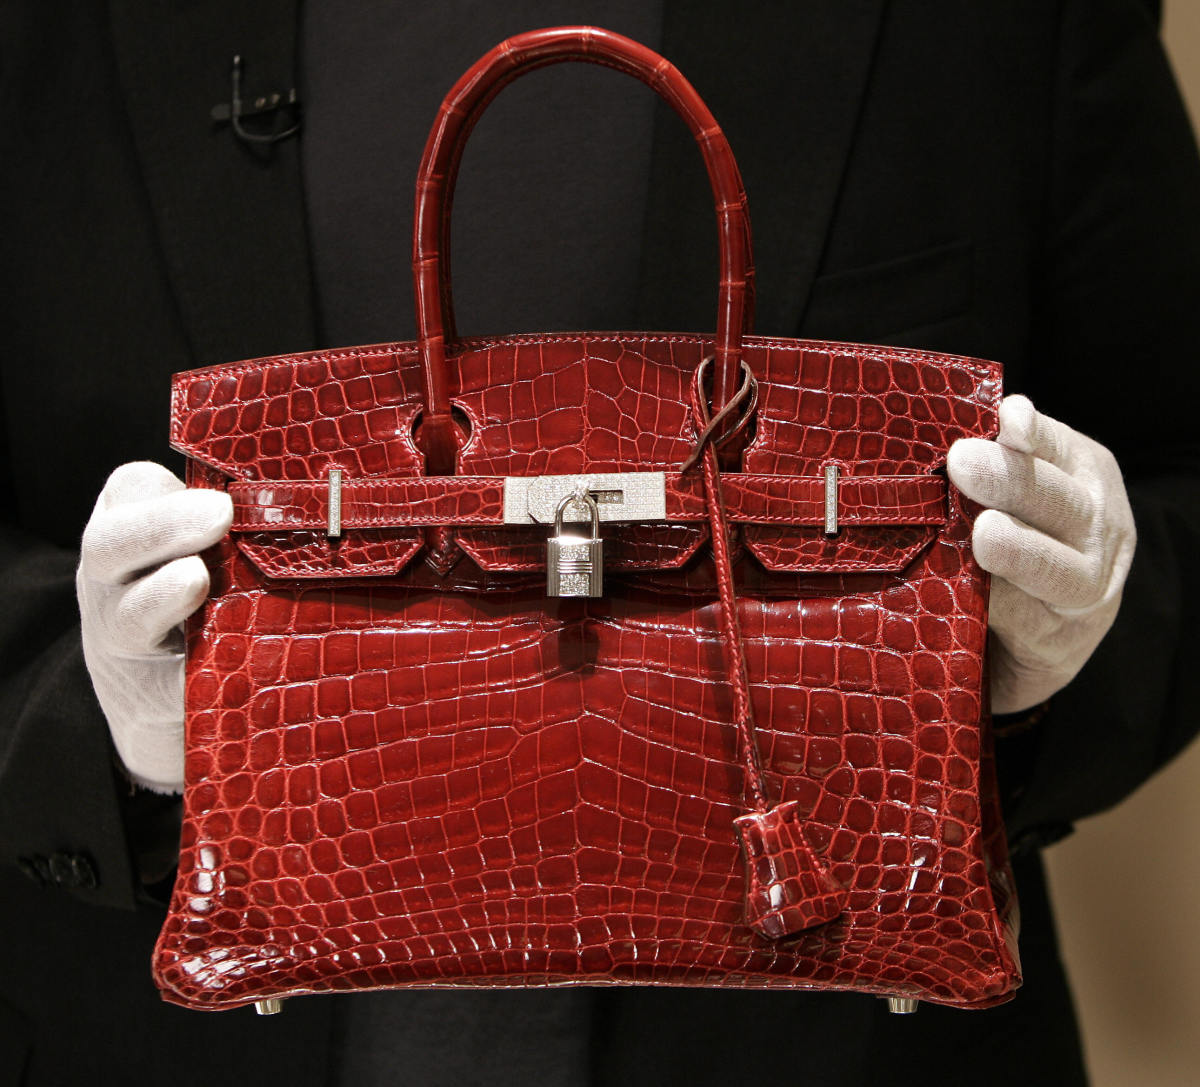 A crocodile Hermès Birkin Bag at the brand's store in New York in 2007. Photo: Timothy A. Clary/AFP/Getty Images